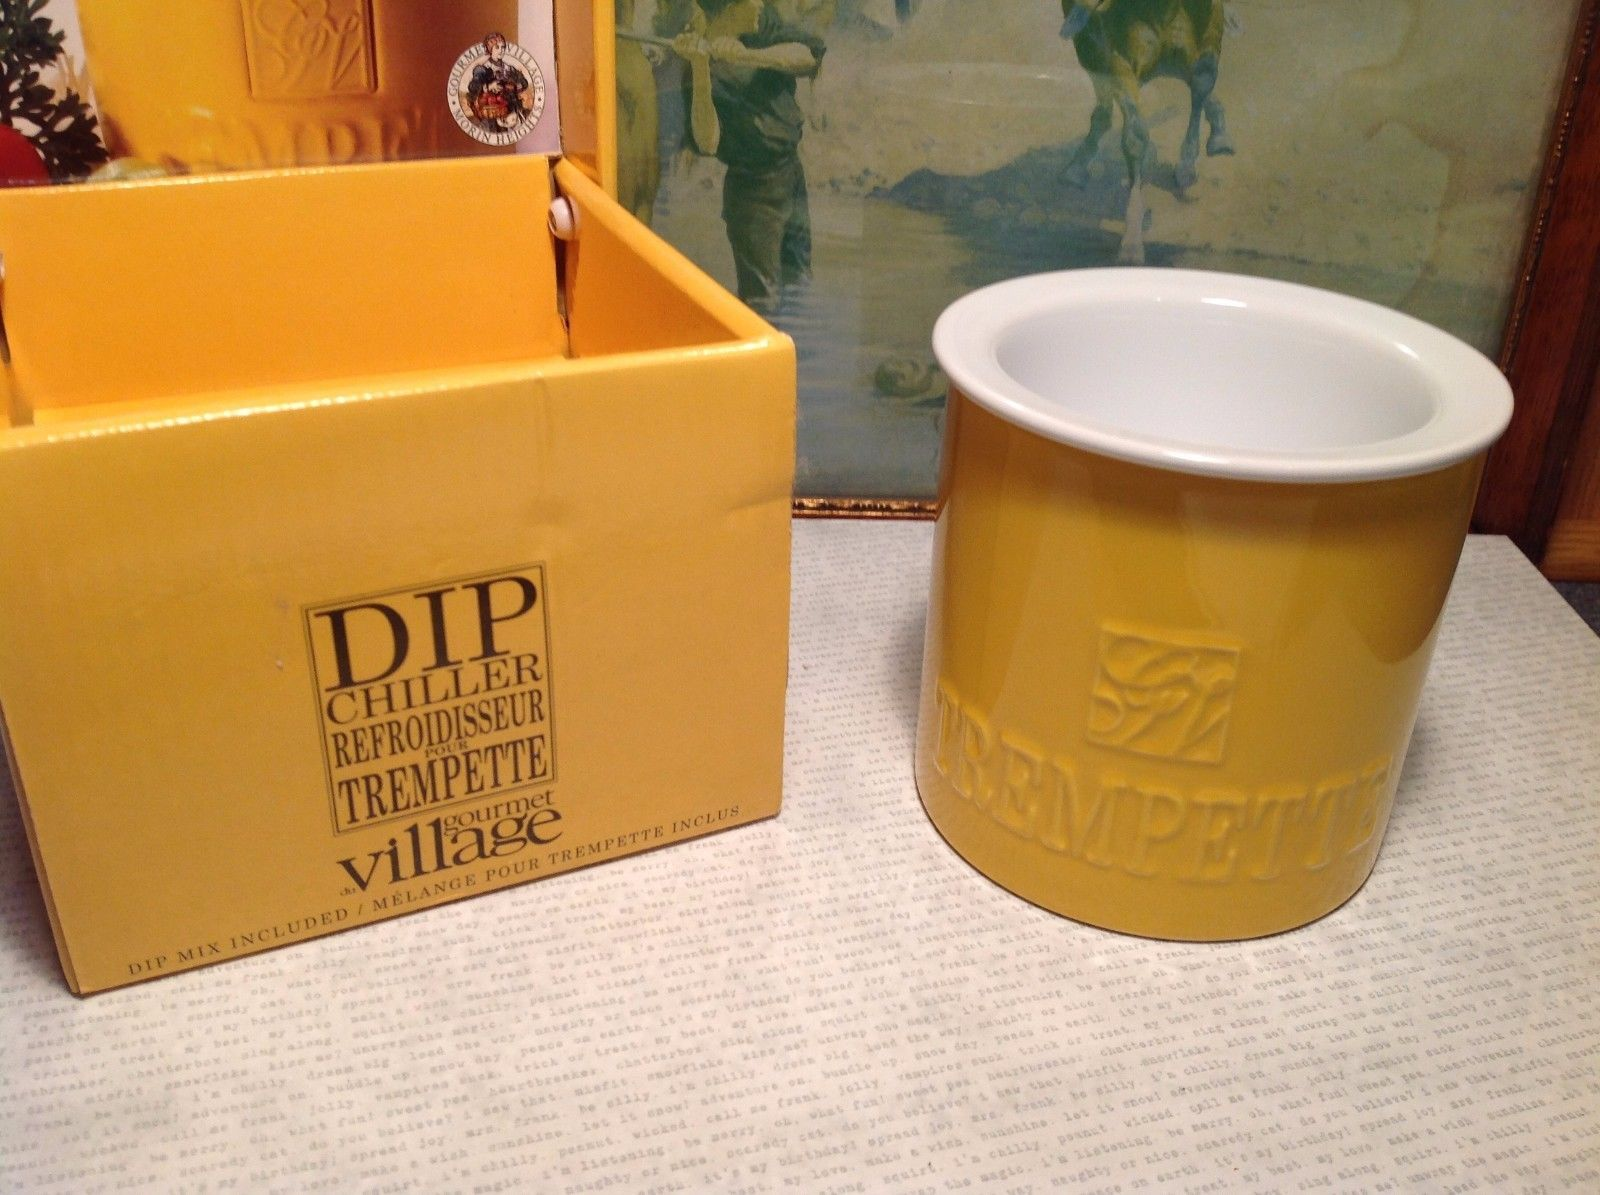 NEW Gourmet Village Yellow Bistro Trempette Dip Chiller